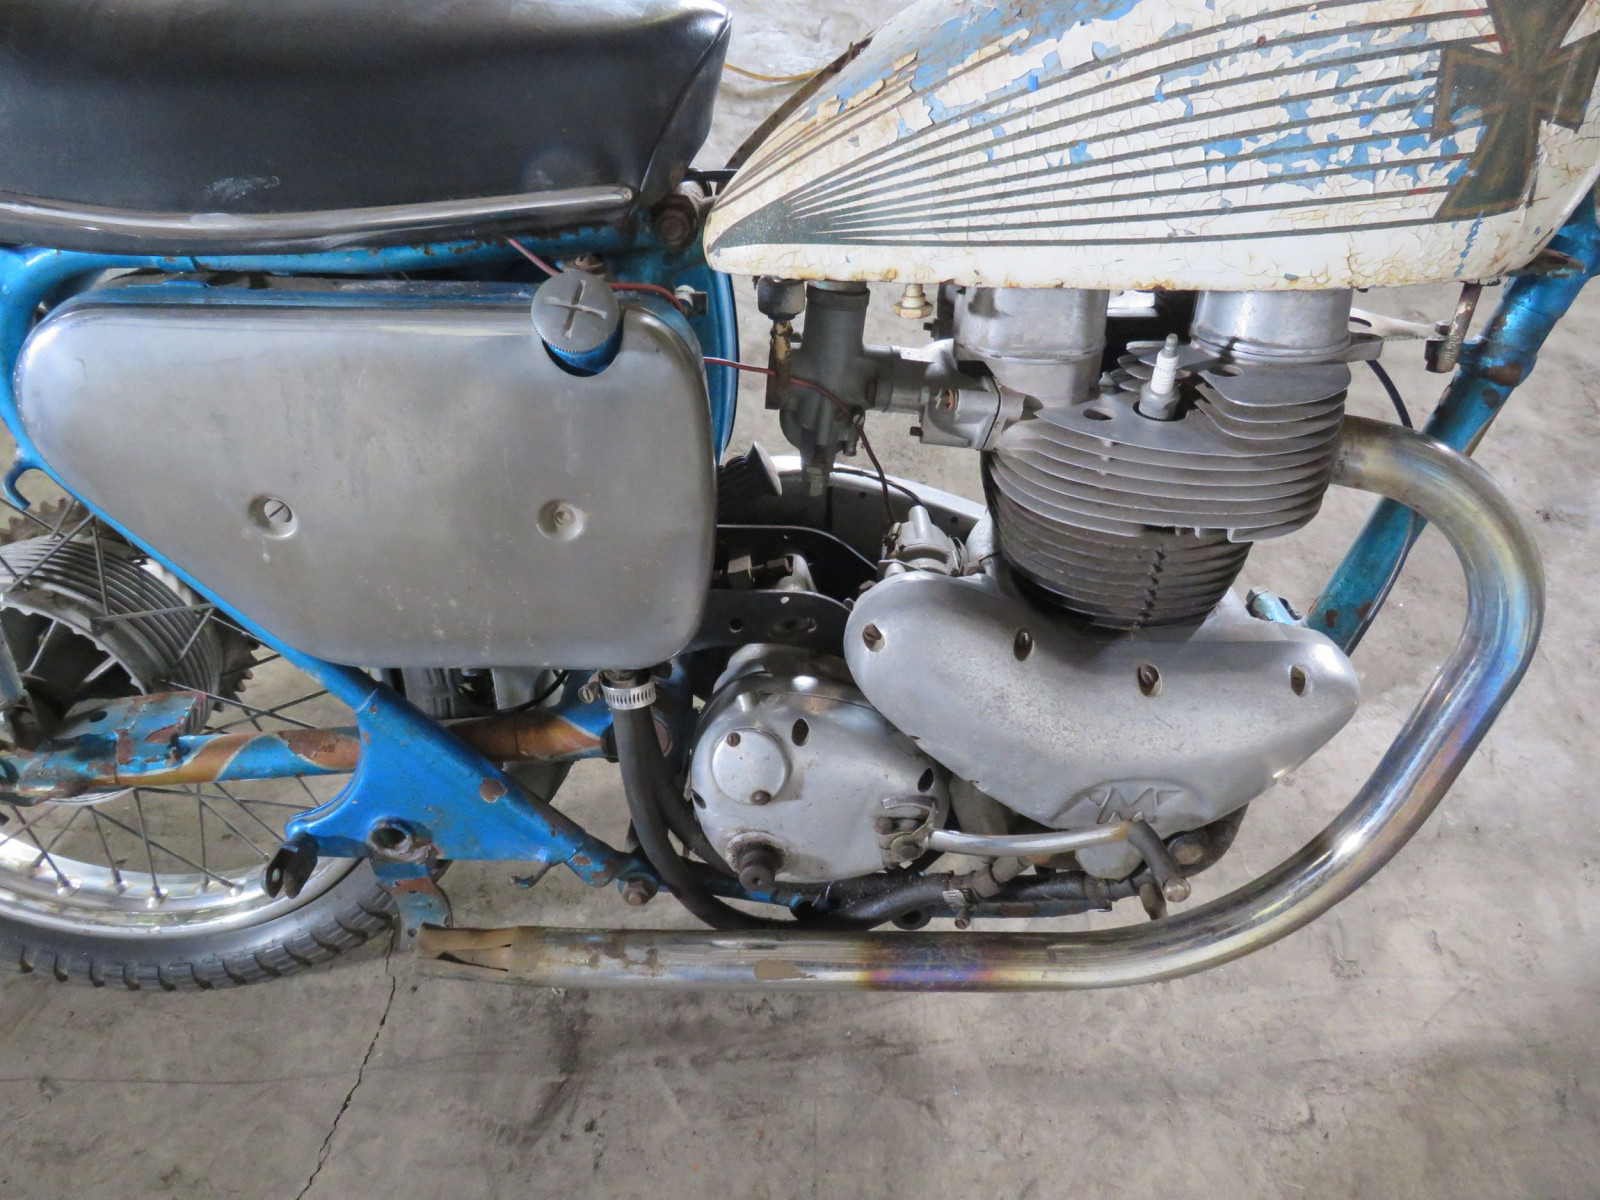 1960 Matchless G12 Motorcycle - Image 6